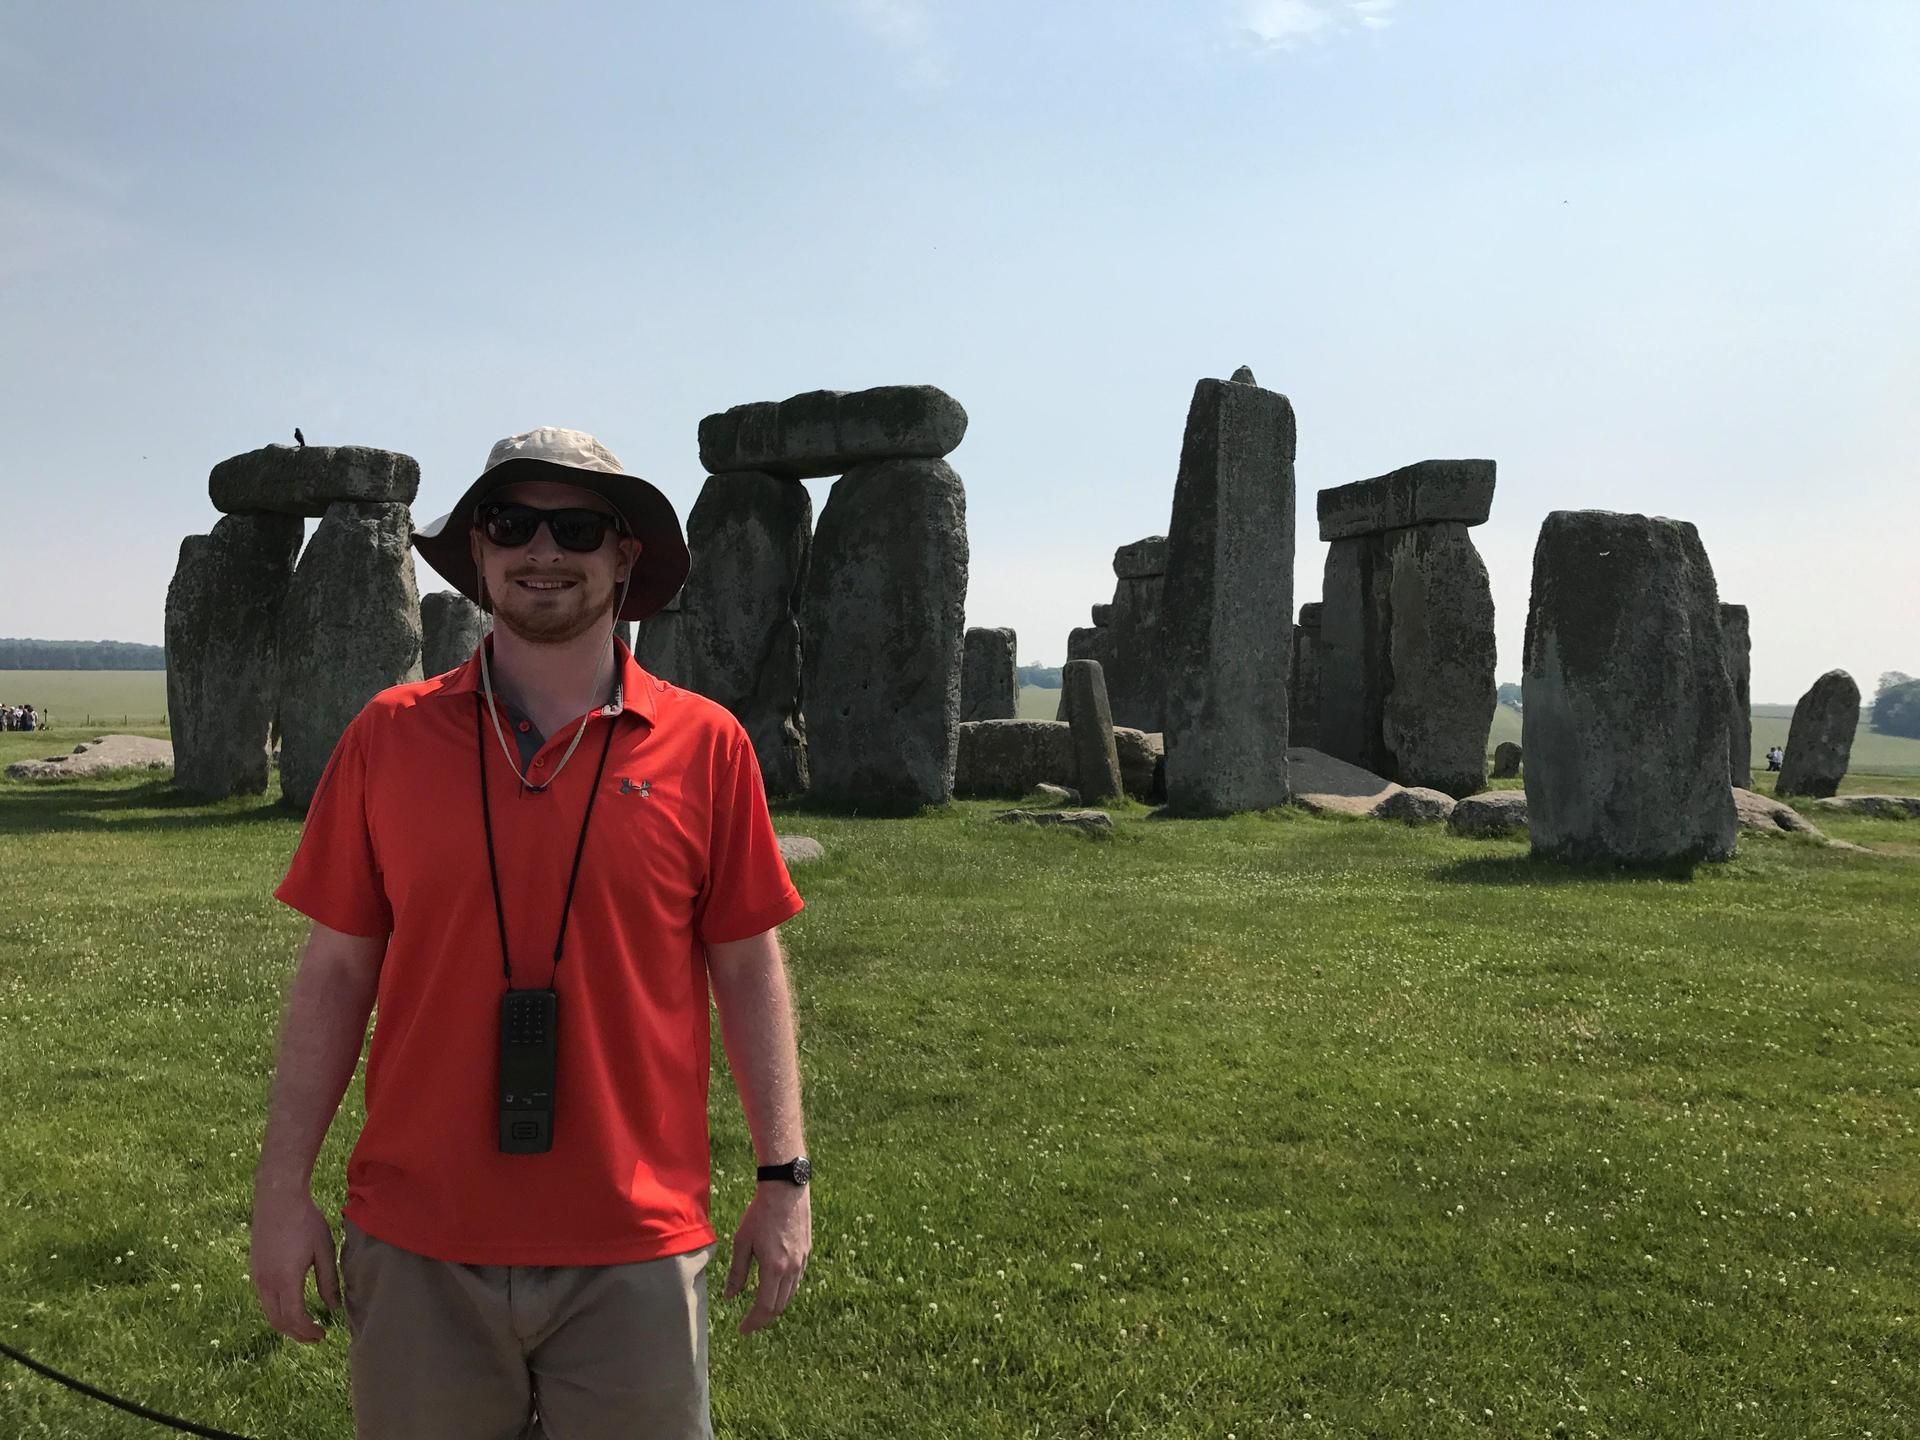 Mr. Miller visits Stonehenge in the South of England.